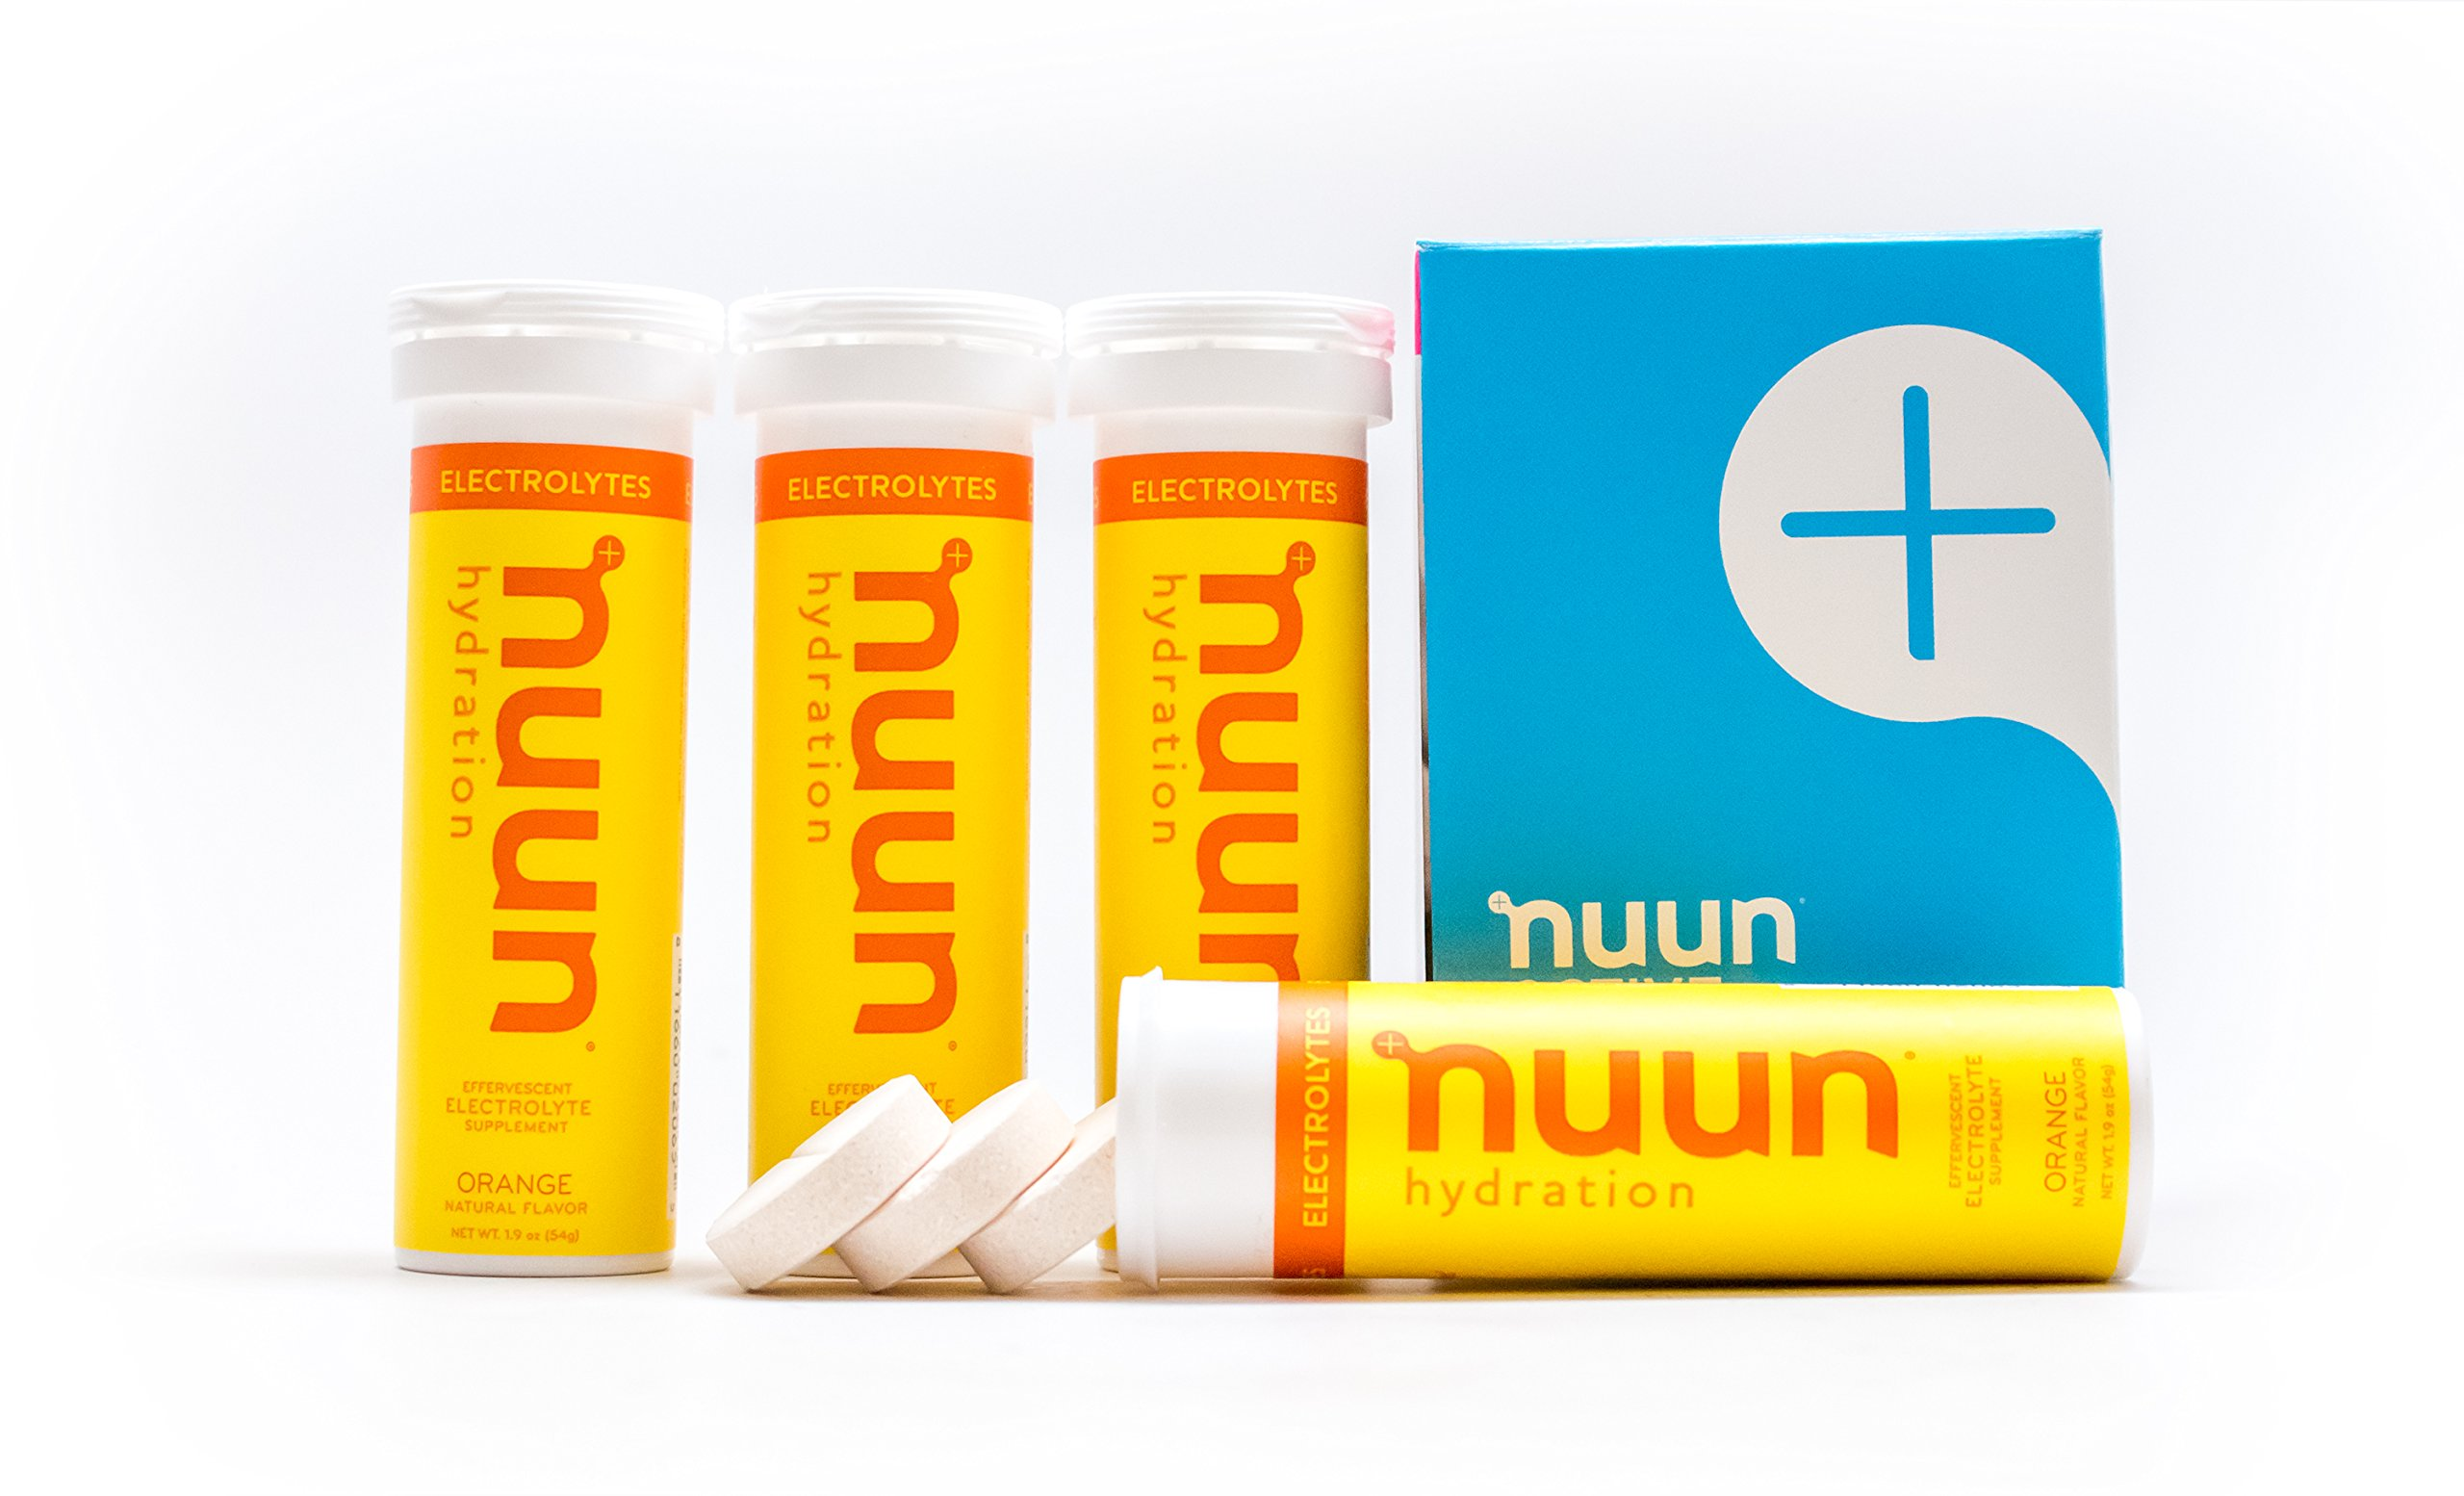 Nuun Hydration: Electrolyte Drink Tablets, Orange, Box of 4 Tubes (40 servings), to Recover Essential Electrolytes Lost Through Sweat